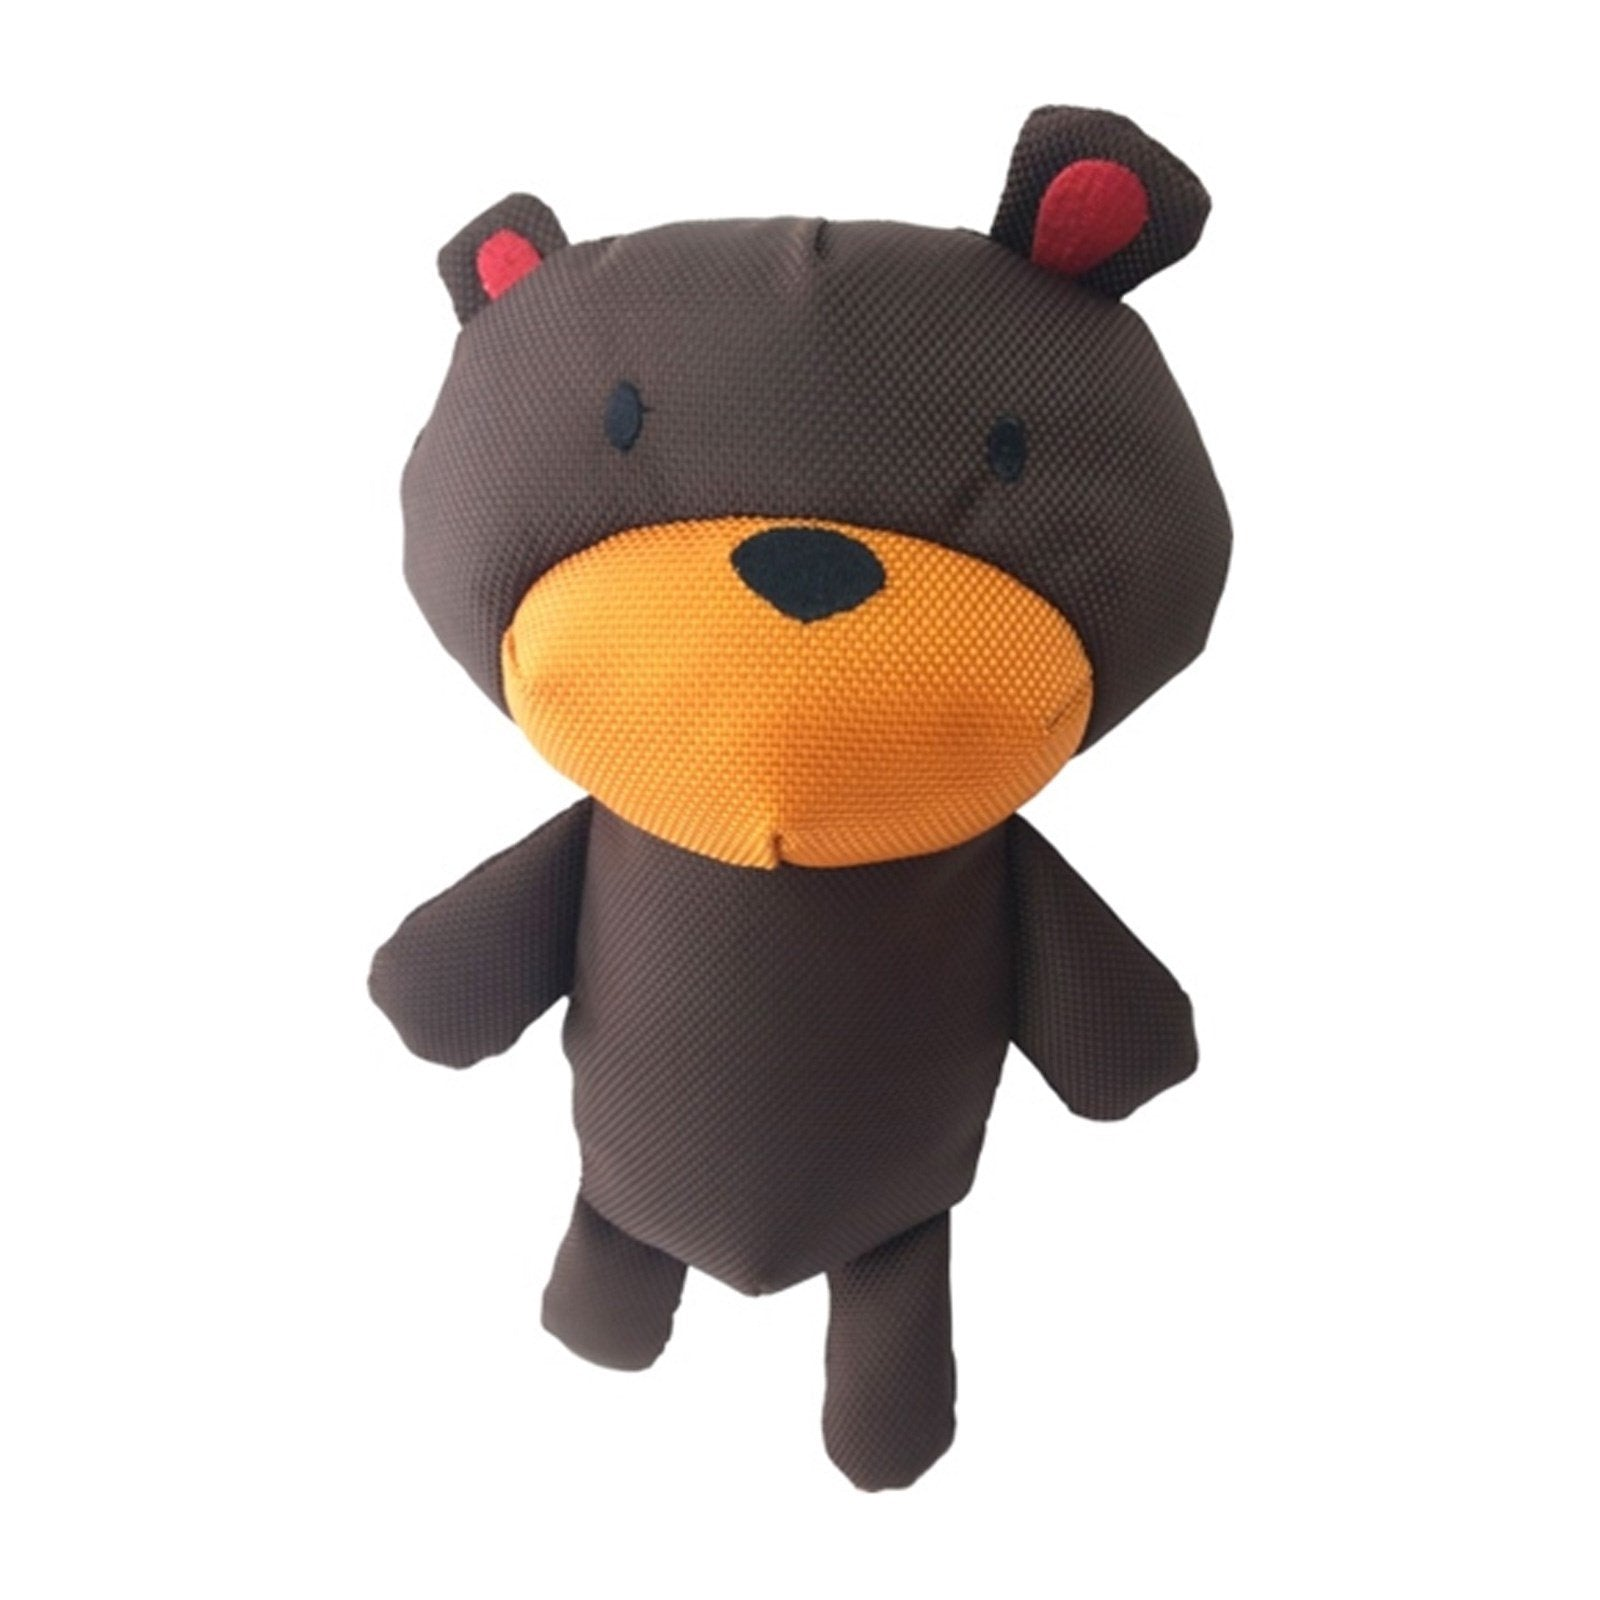 Toby the Teddy Bear Plush Toy